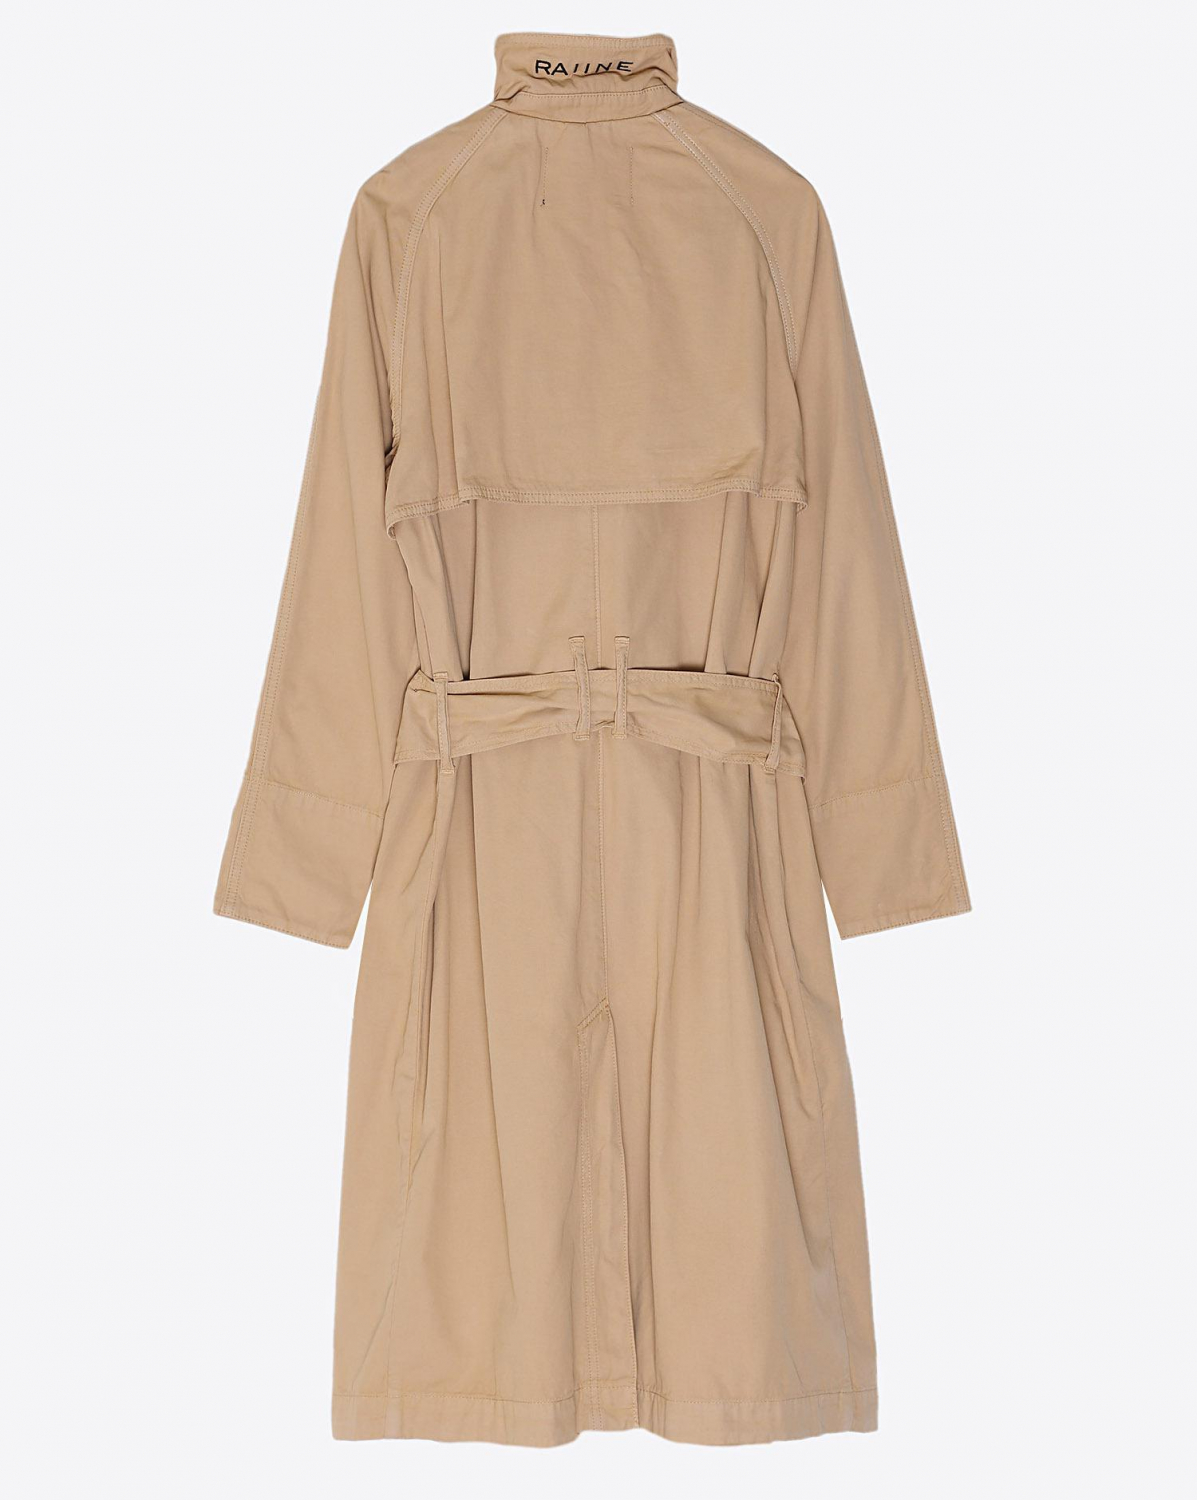 Raiine Union Trench Coat - Desert Sand